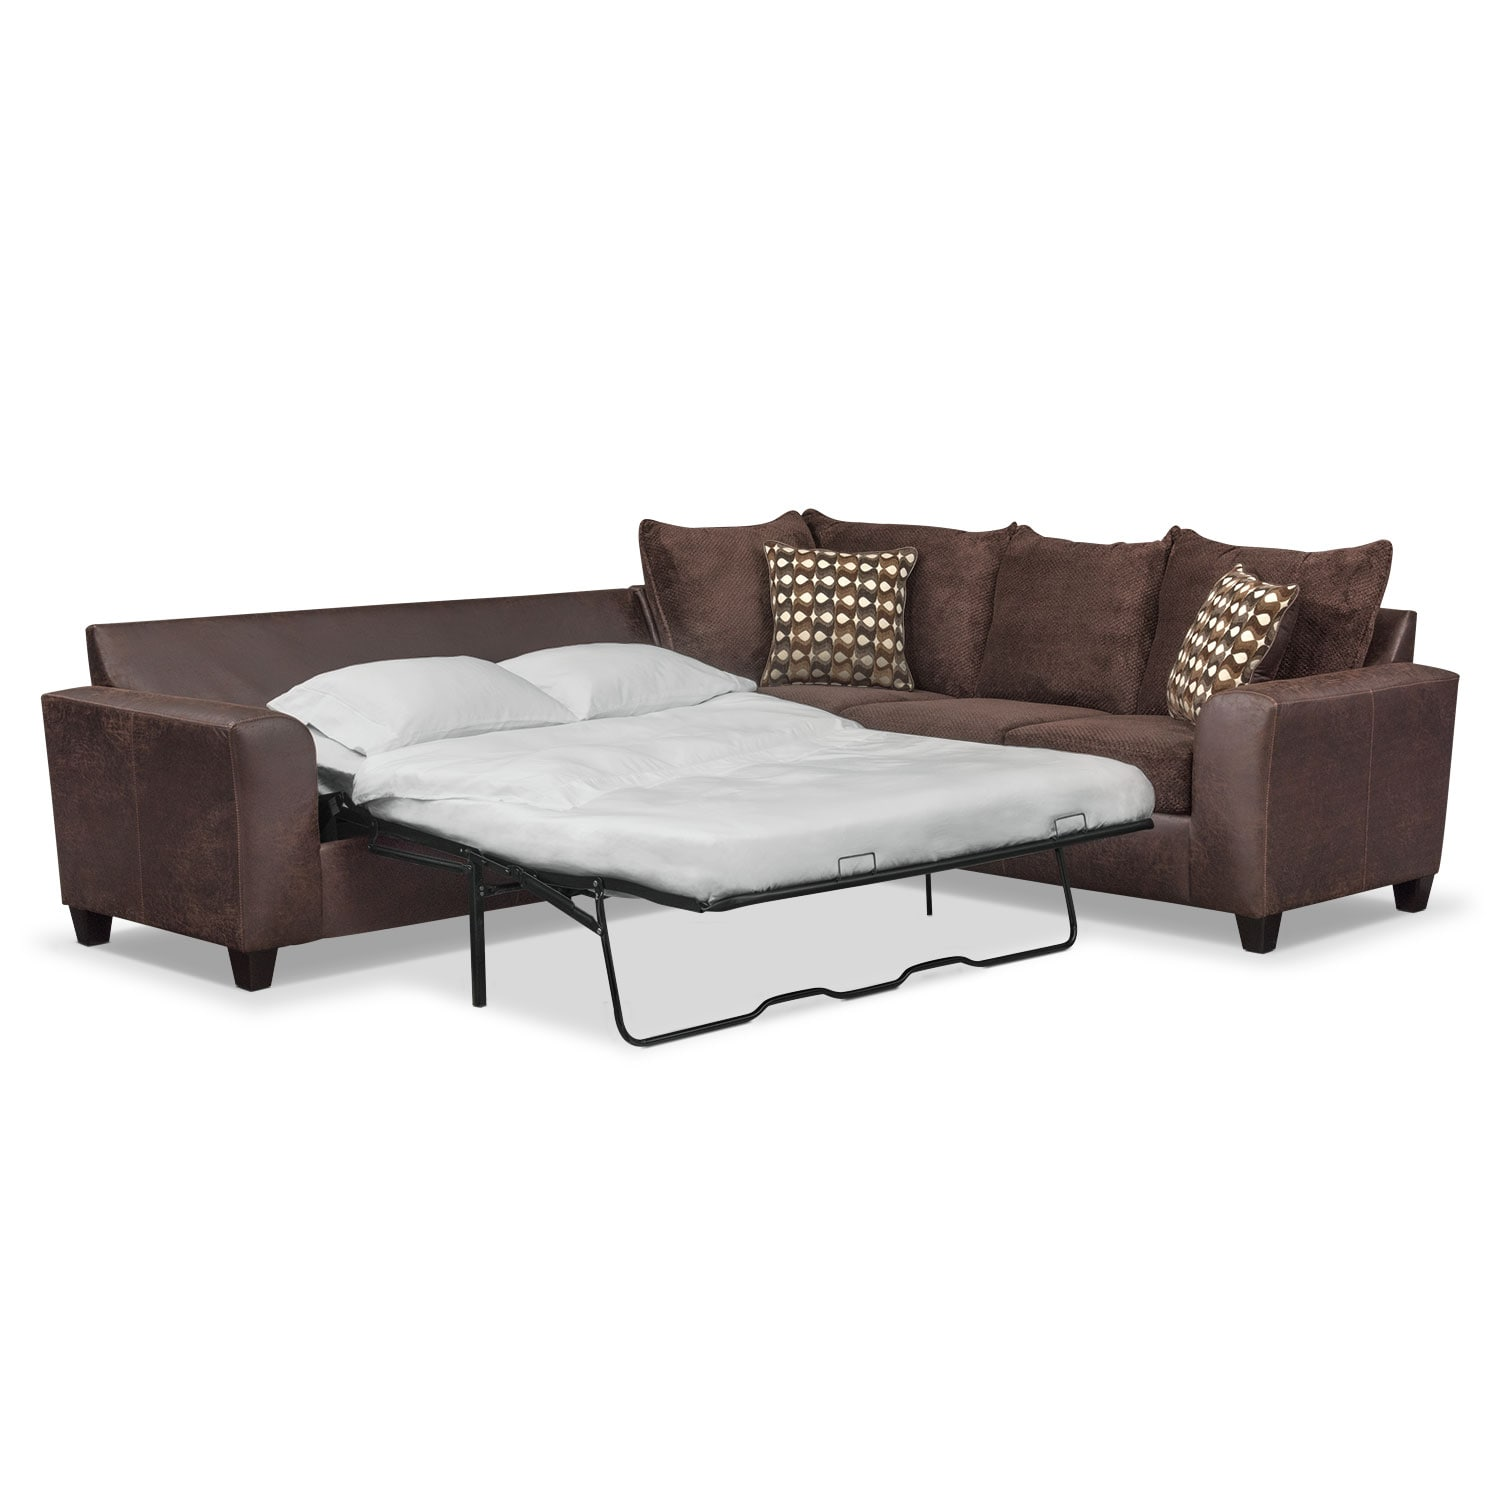 Brando 2-Piece Innerspring Sleeper Sectional - Chocolate